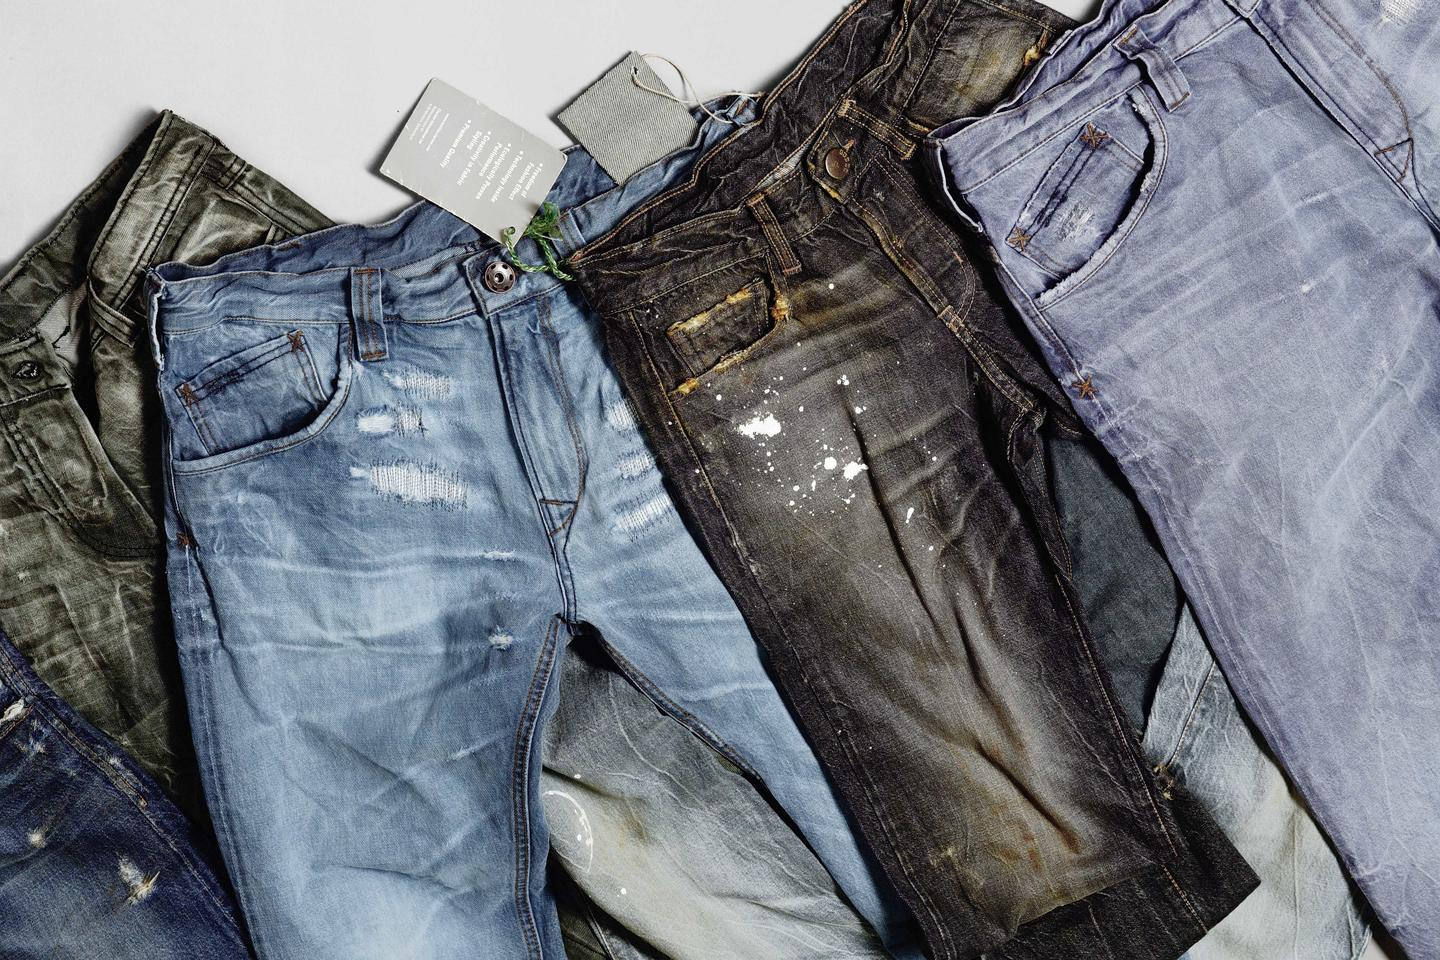 Clariant's Advanced Denim manufacturing process cuts the amount of water, energy and chemicals needed to produce a pair of jeans (Photo: Clariant)